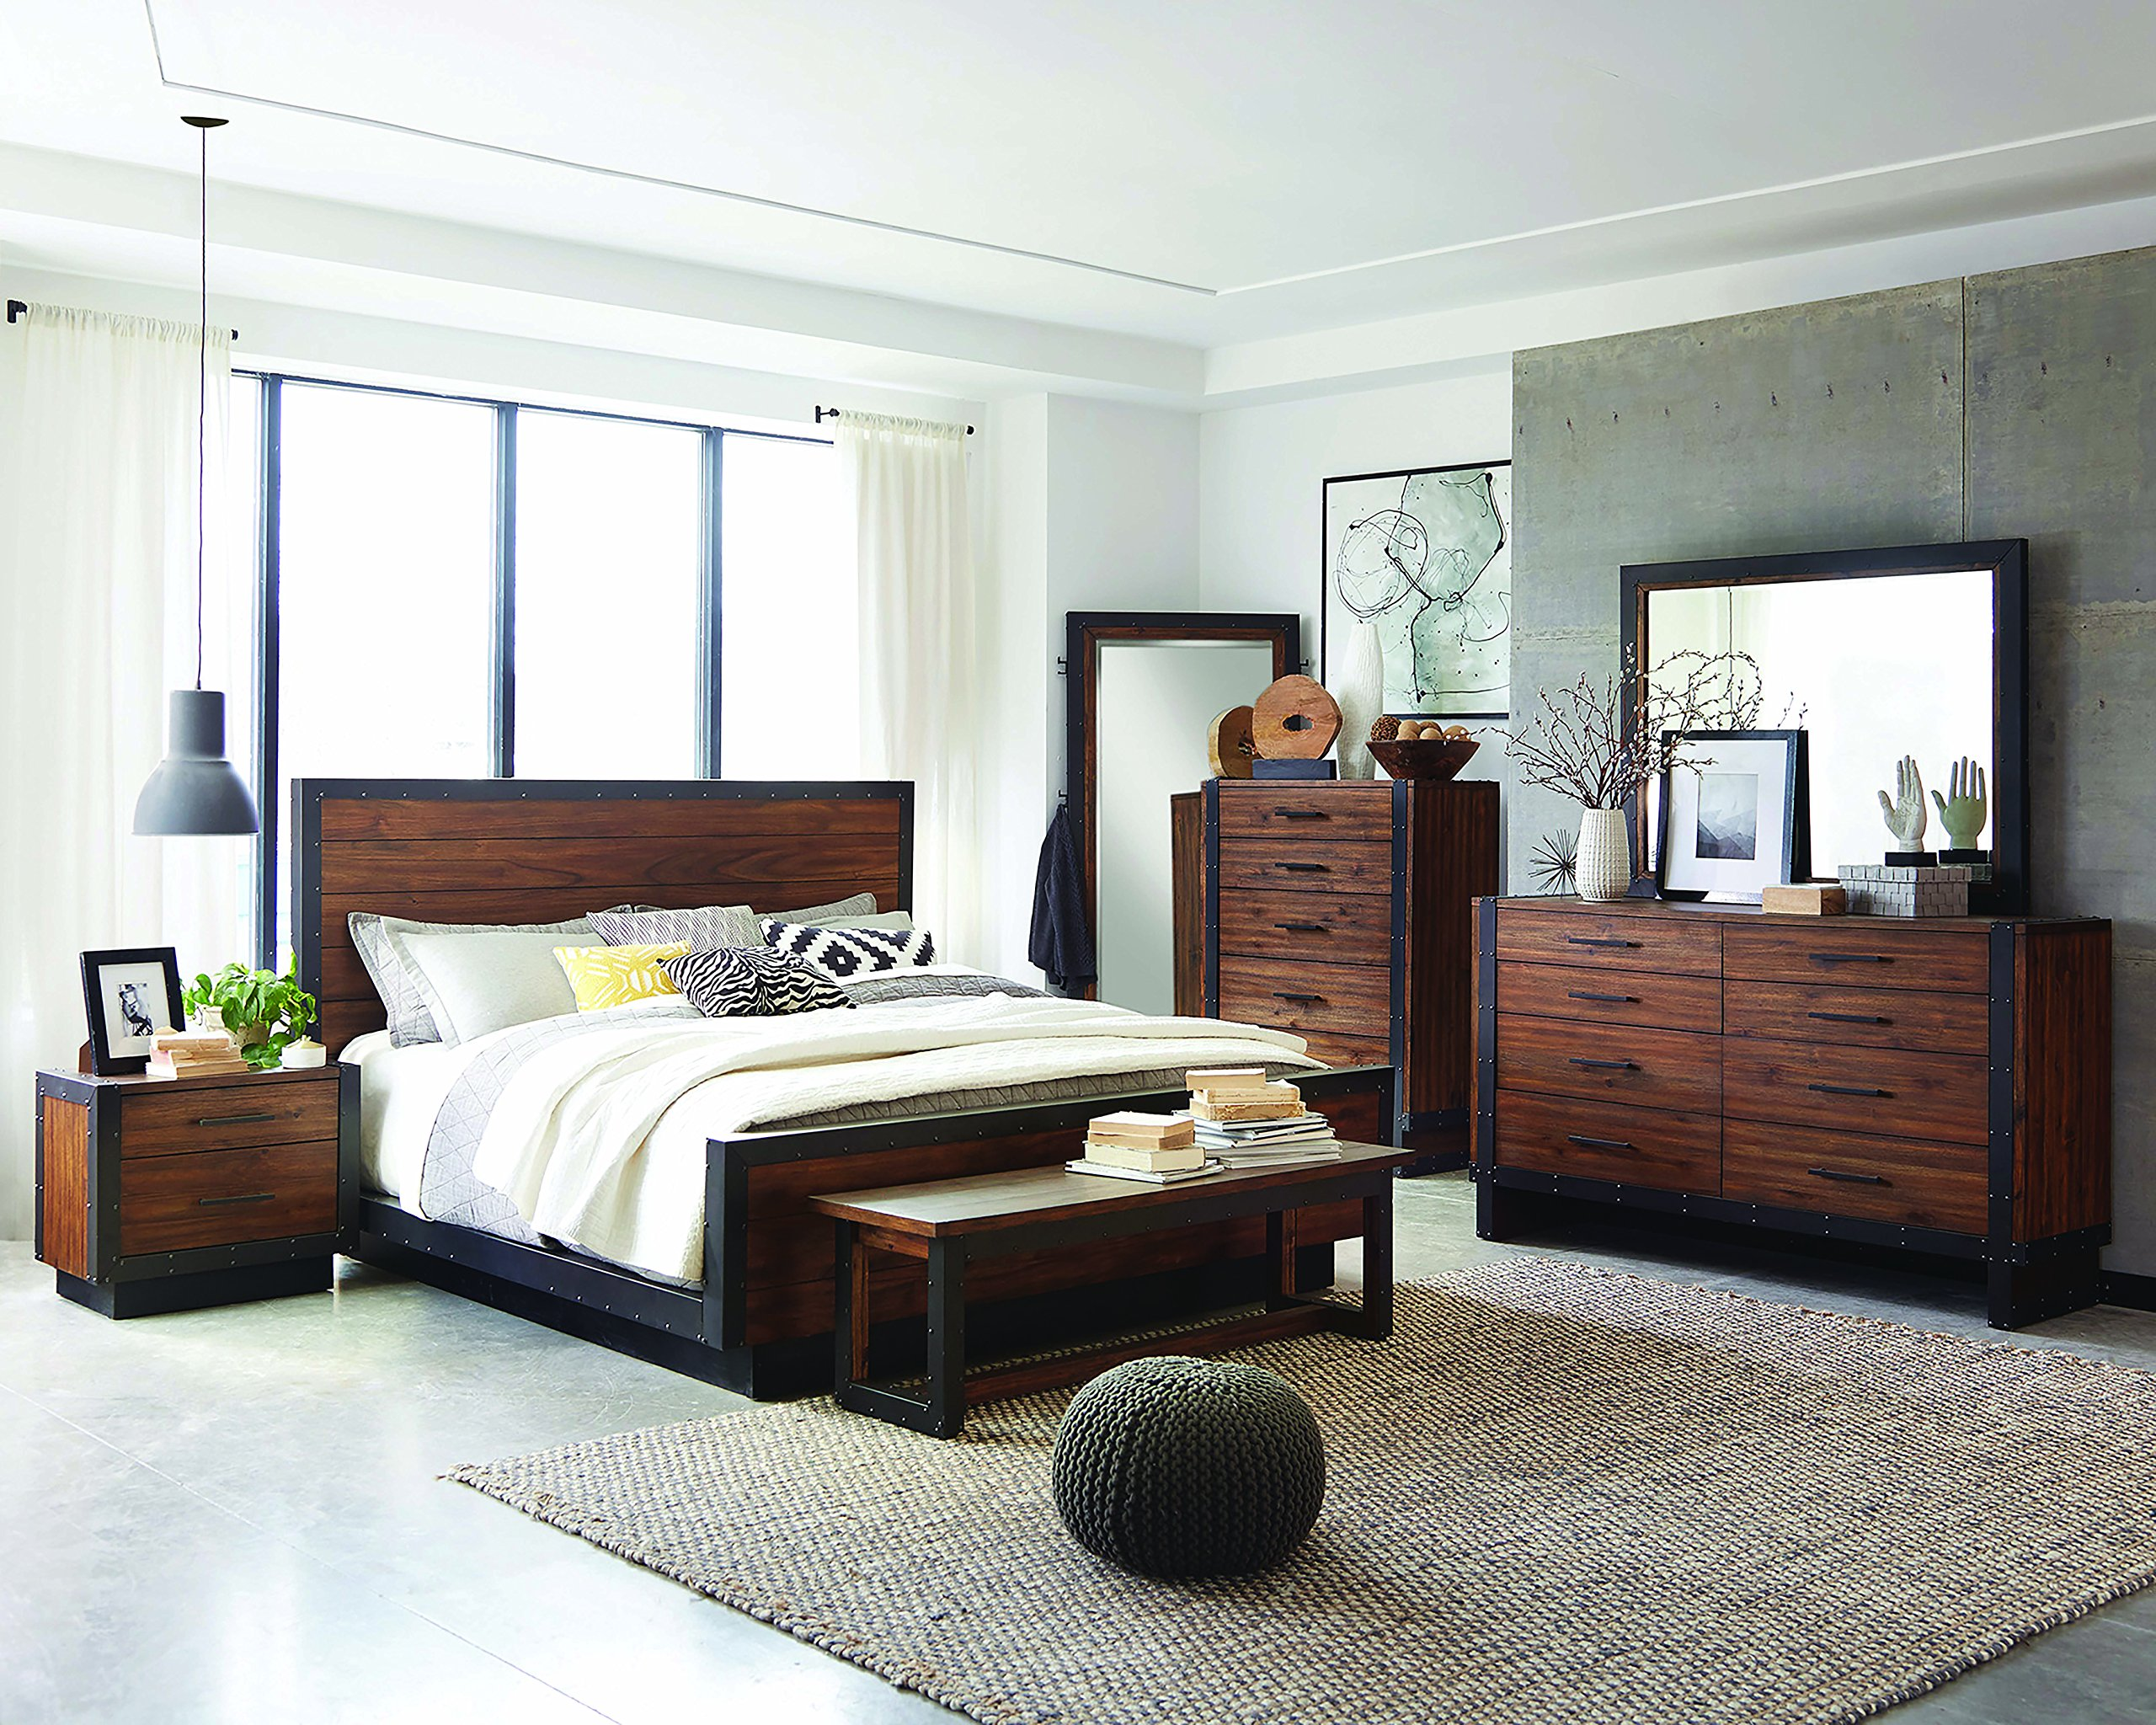 Scott Living Ellison Bourbon Brown Finish Queen Bed with 13 Slatted Panel Design - Some assembly may be required Absolute harmony of rustic, modern, and industrial Styles A true modern platform bed with extended platform on side rails - bedroom-furniture, bedroom, bed-frames - 91ZoFqFR4dL -